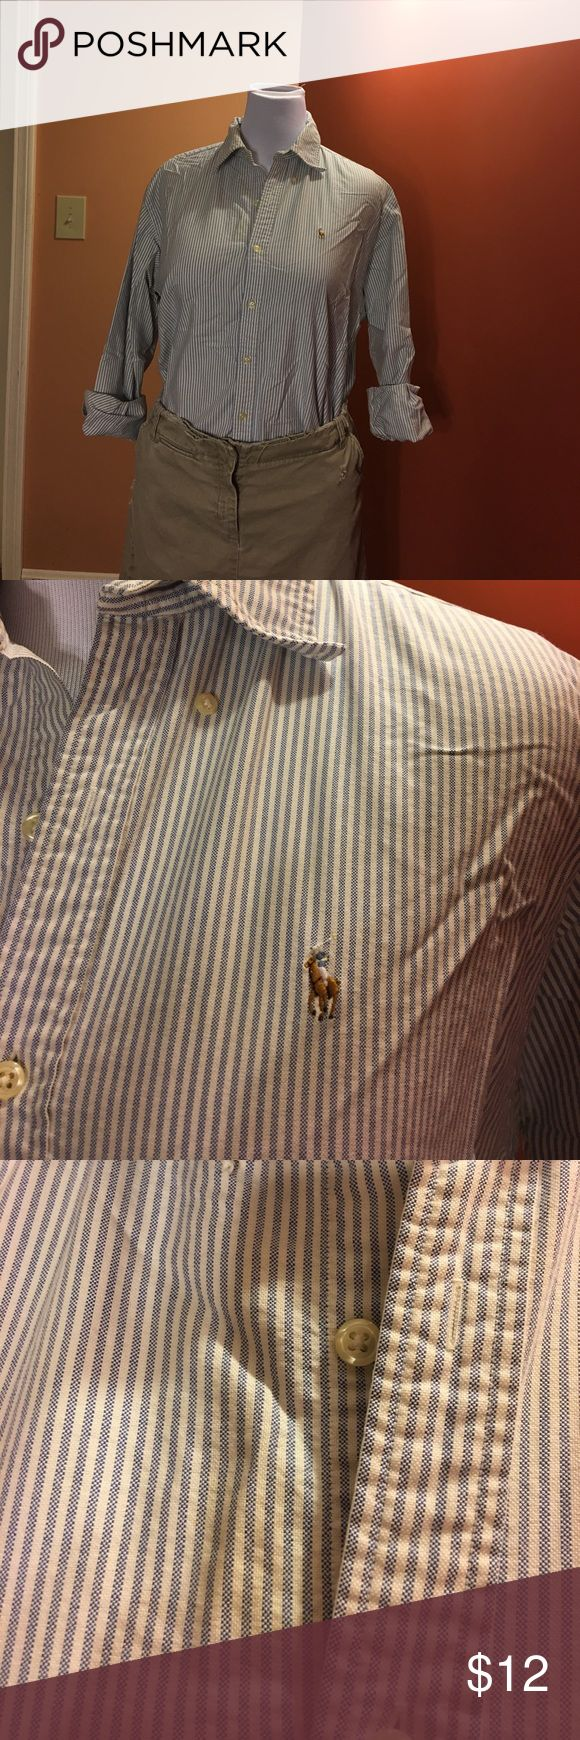 """Ralph Lauren polo oxford shirt Ralph Lauren women's oxford size 14. Blue and white pinstripe. Has a stain on the right side, picture included. Comes from a smoke and pet free home. Measures 23"""" from armpit to armpit. Polo by Ralph Lauren Tops Button Down Shirts"""